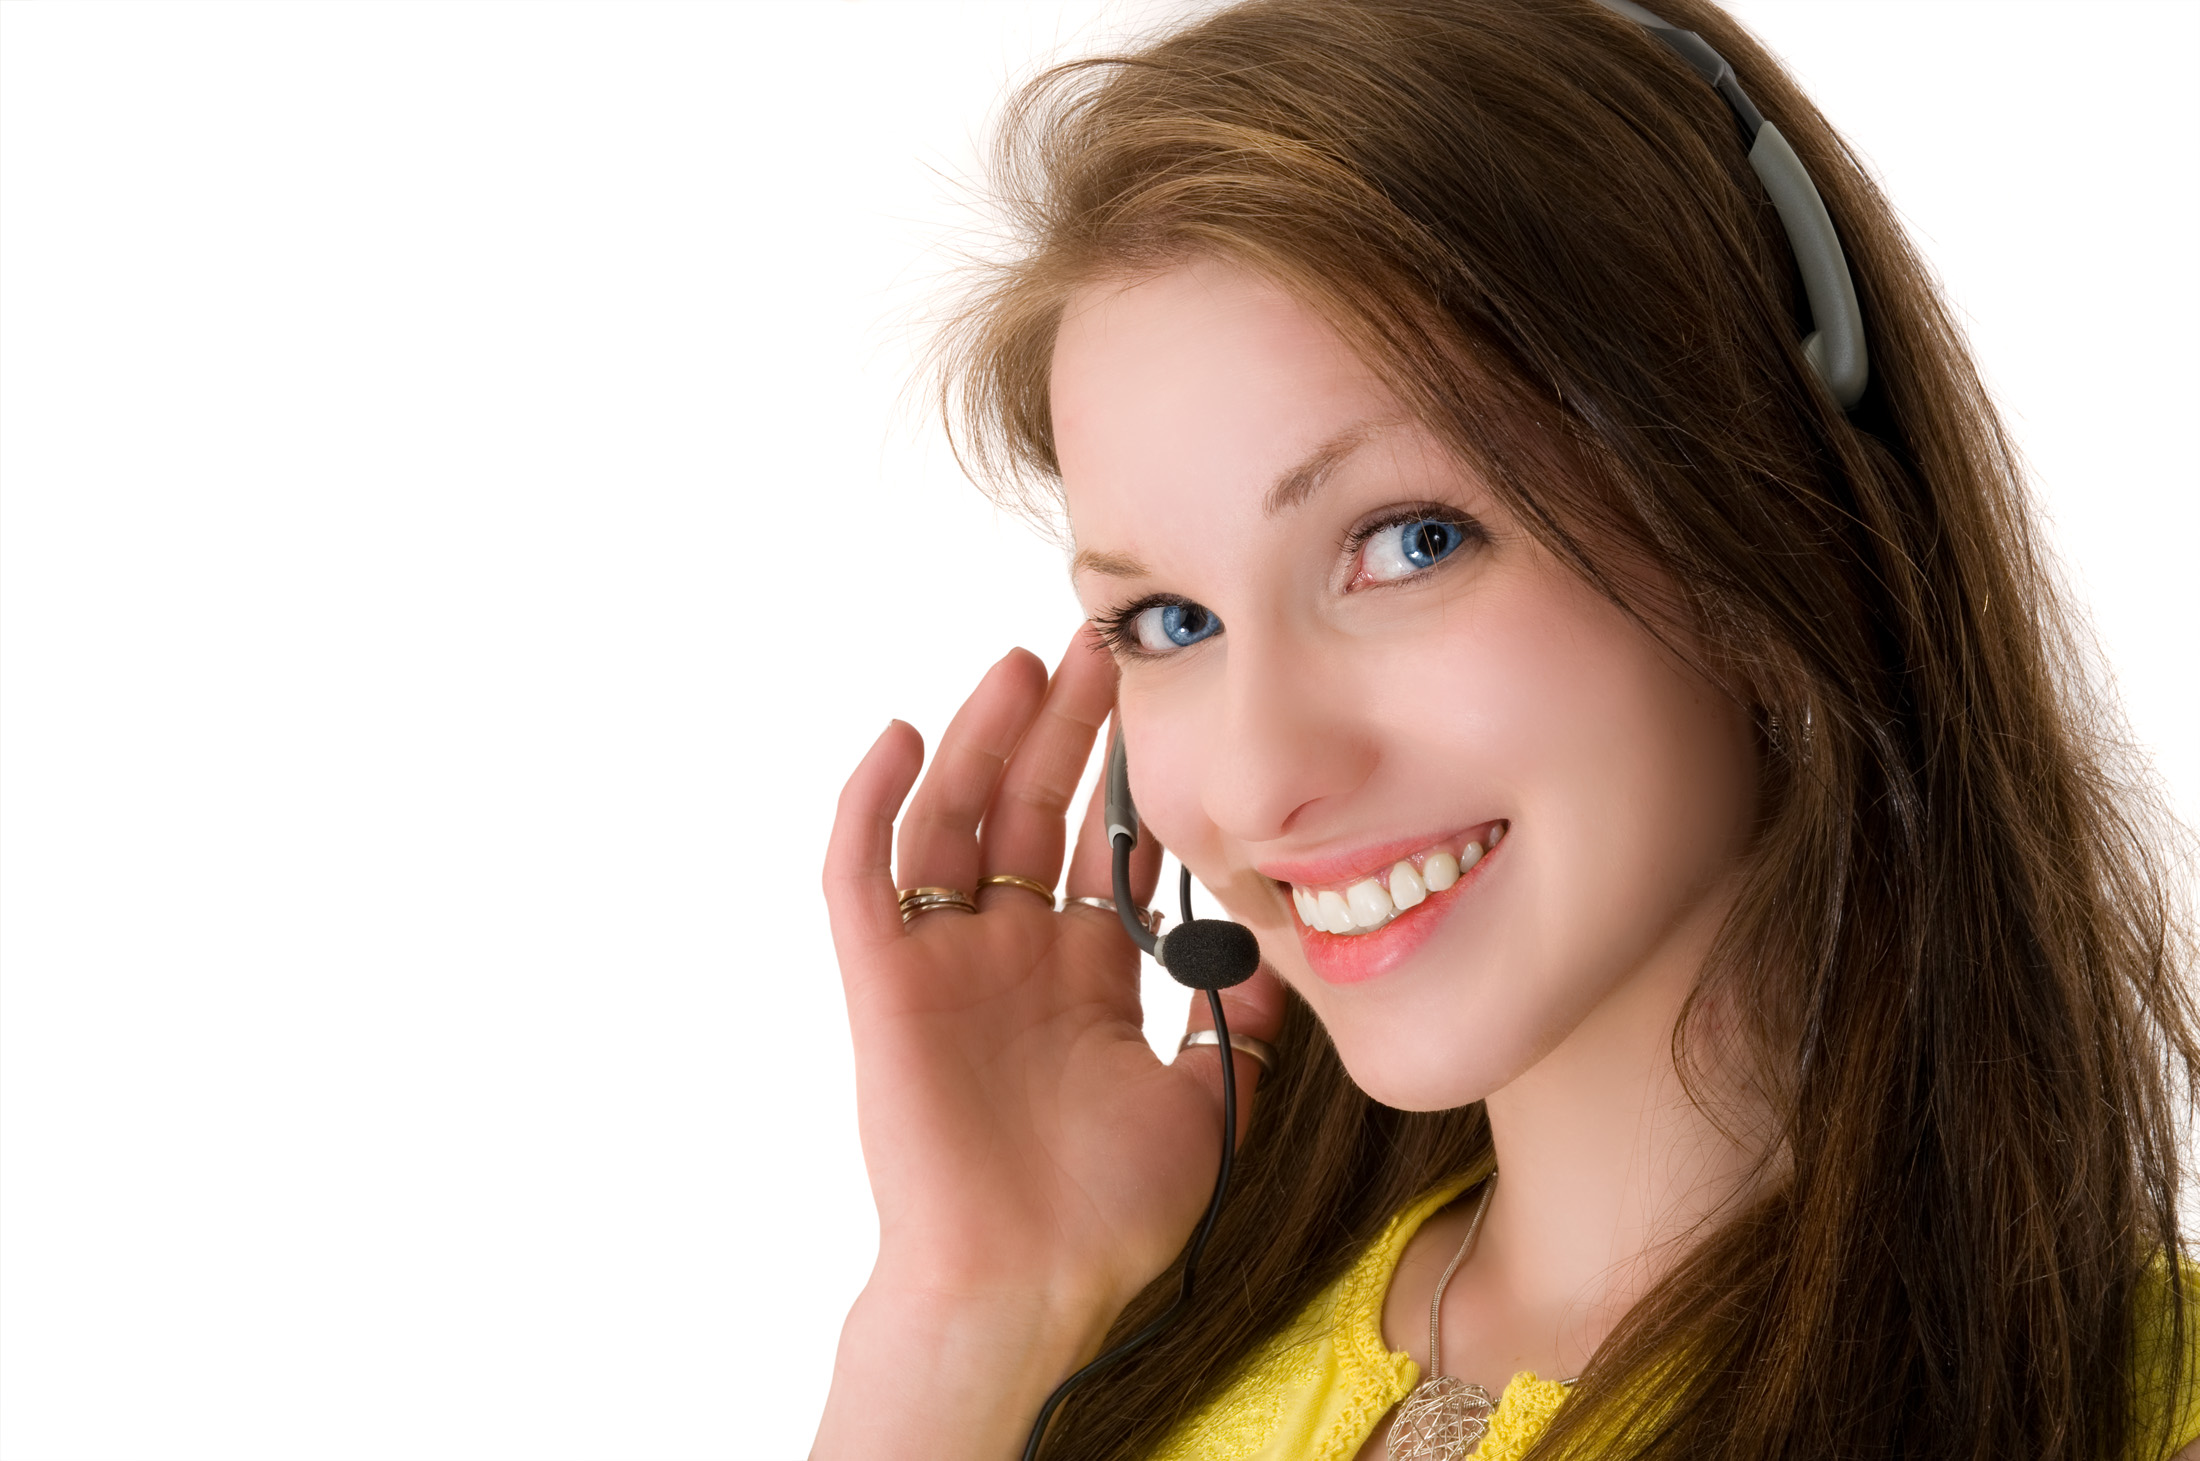 Woman talking on phone headset